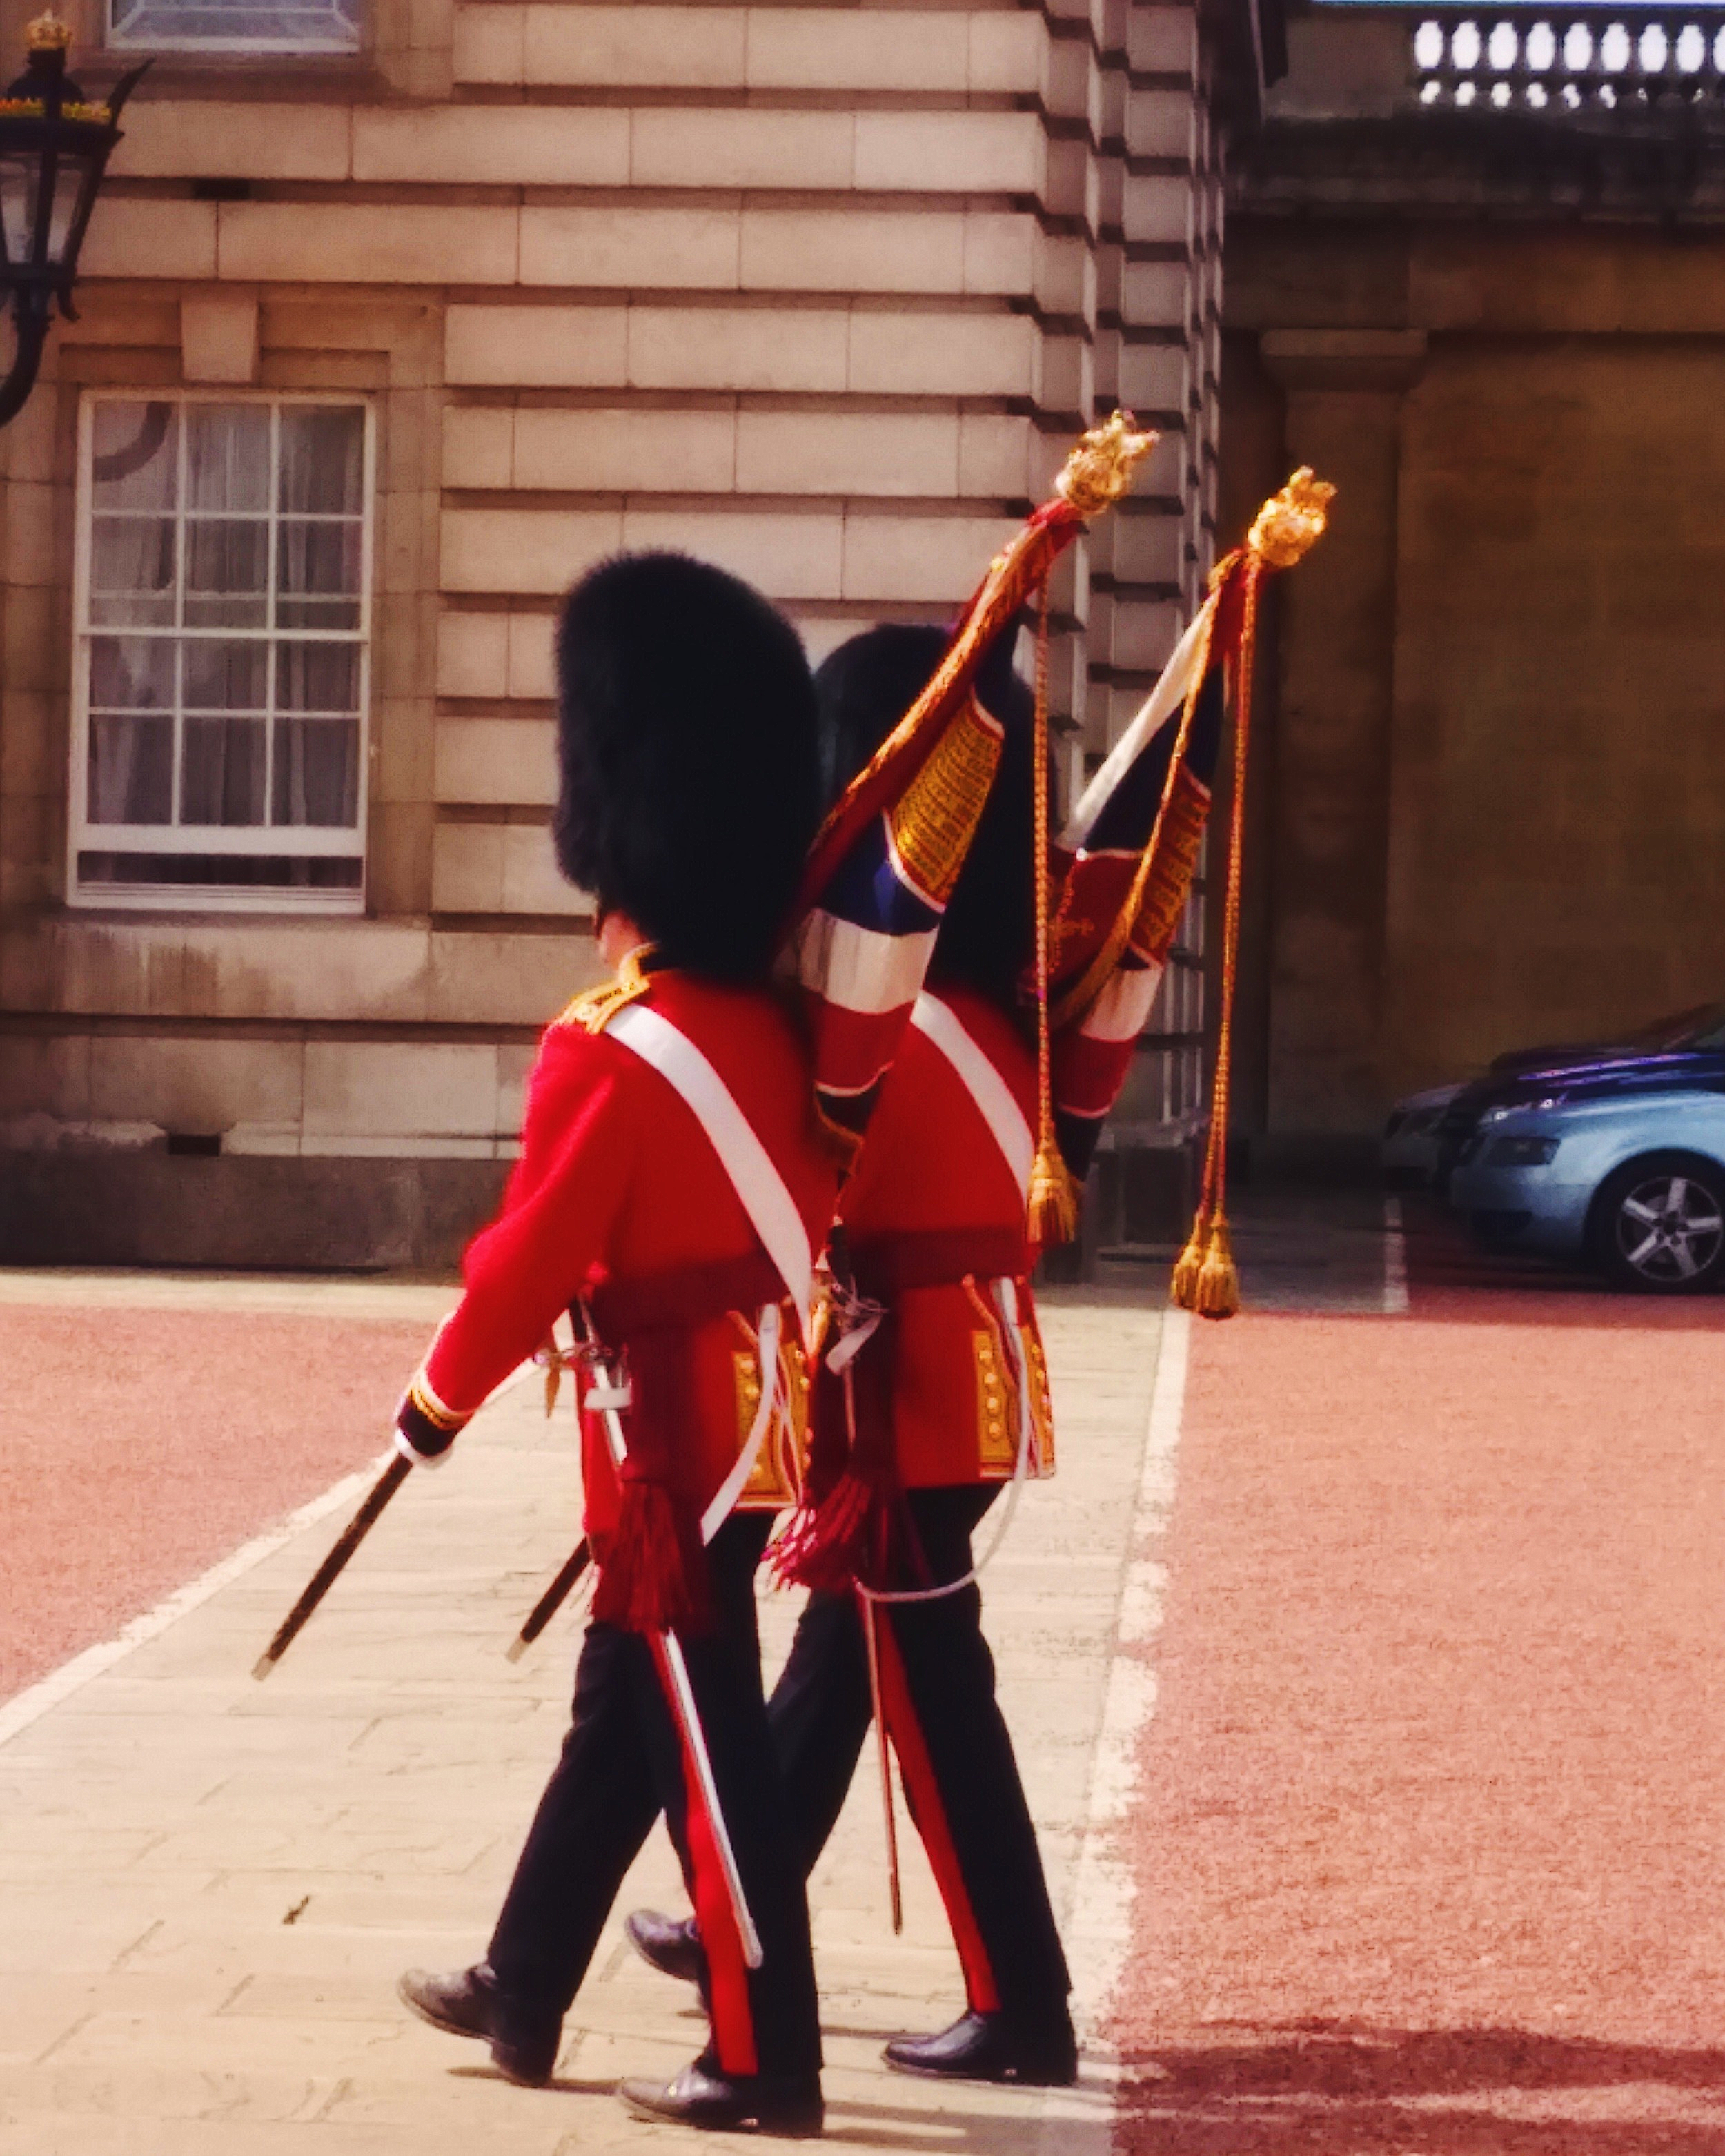 Buckingham Palace Changing of the Guards.